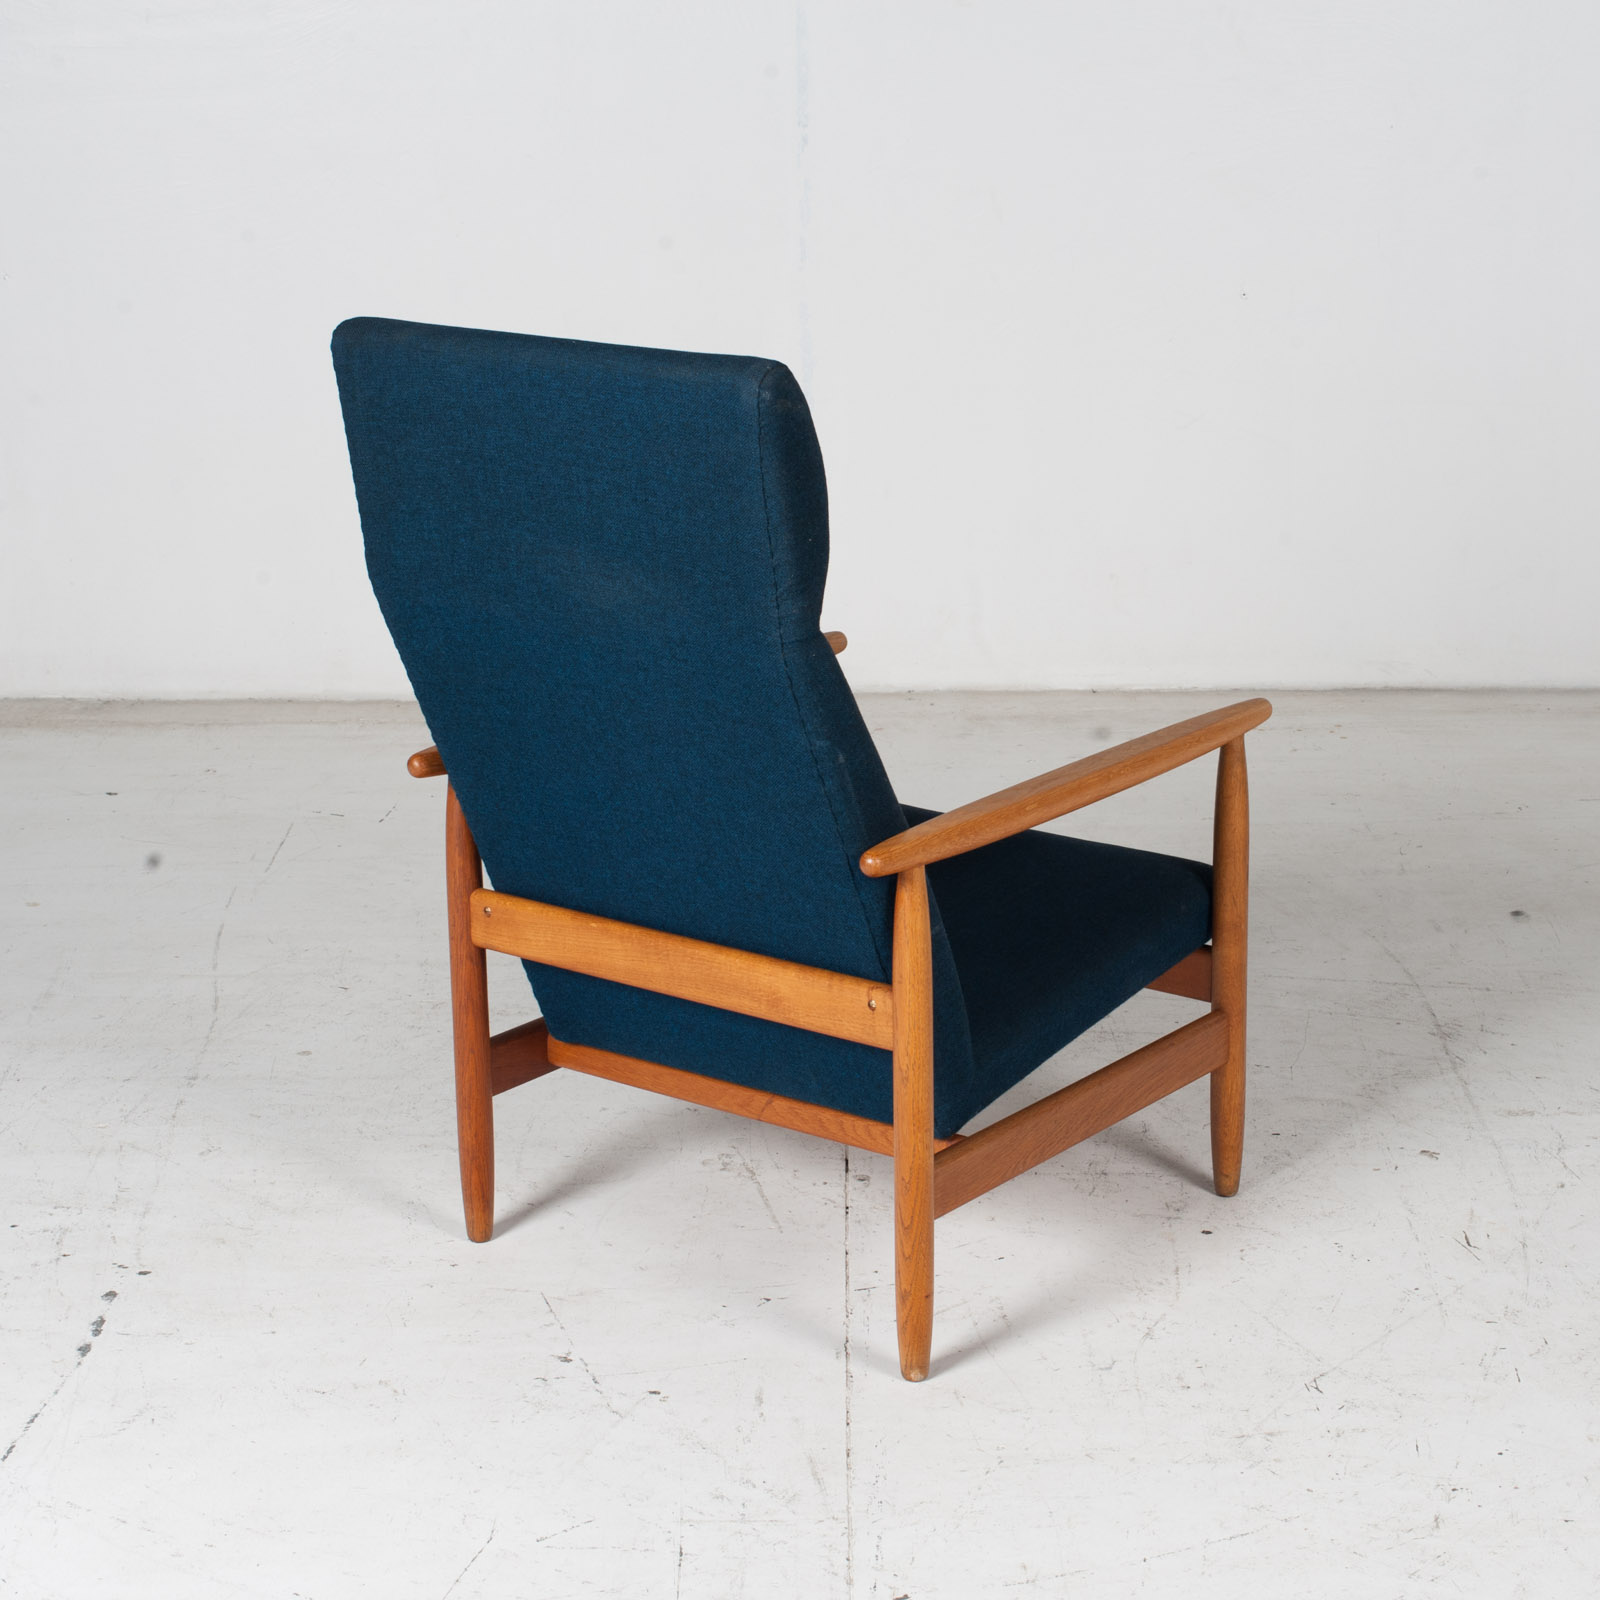 Armchair By Ejvind A. Johansson In Blue Upholstery, 1960s, Denmark9